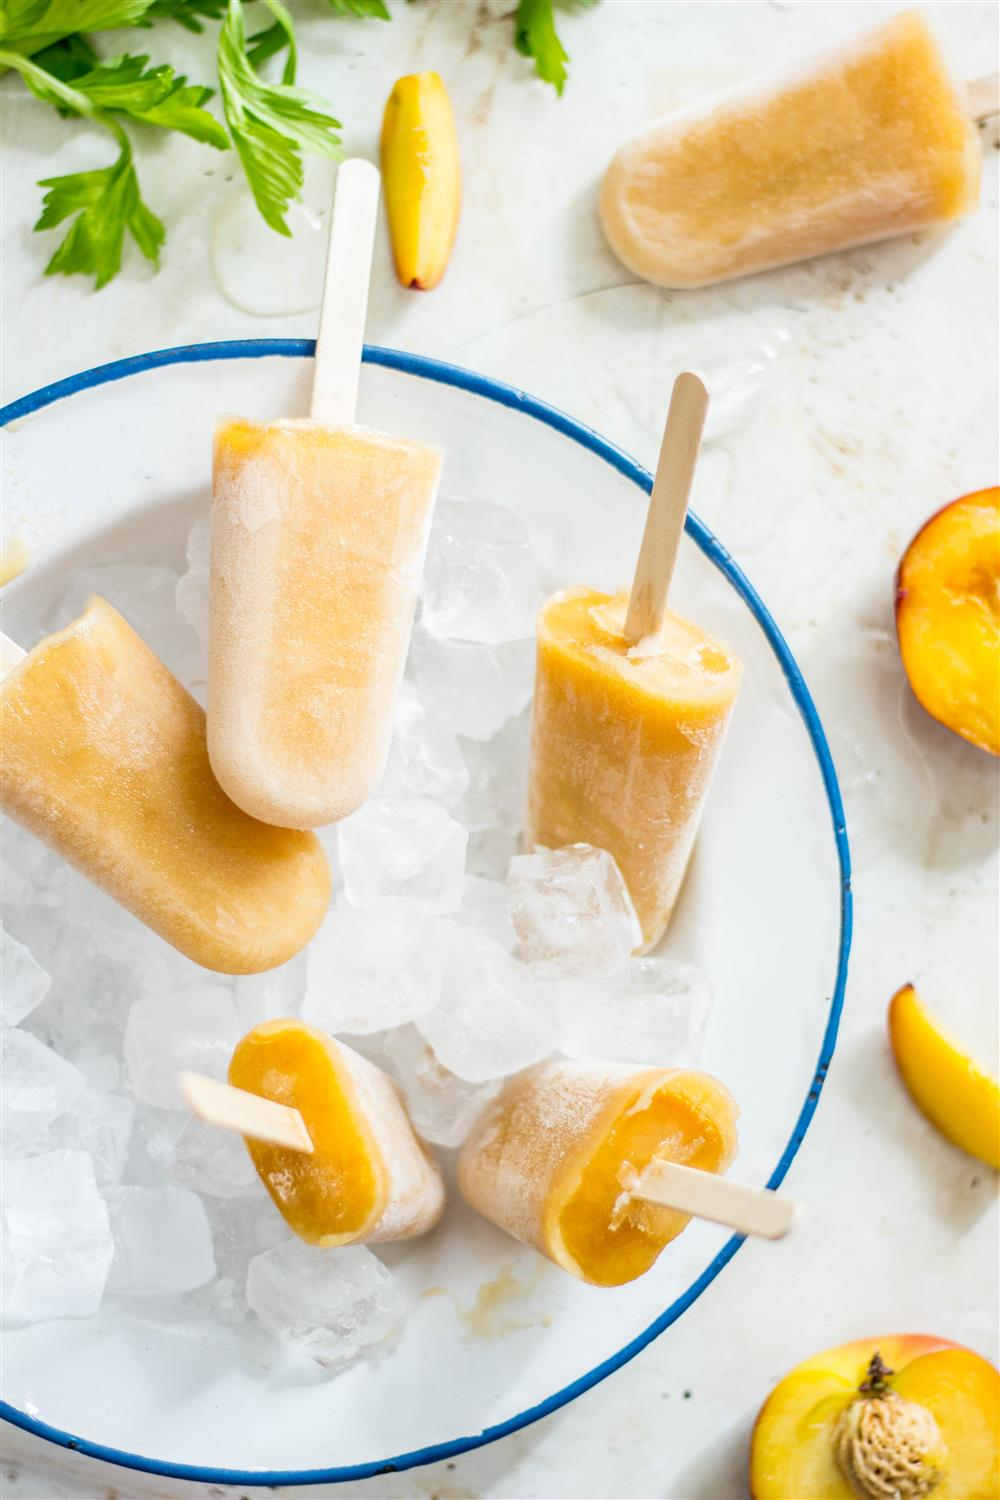 Peach and Celery Ice Lollies via Use Your Noodle